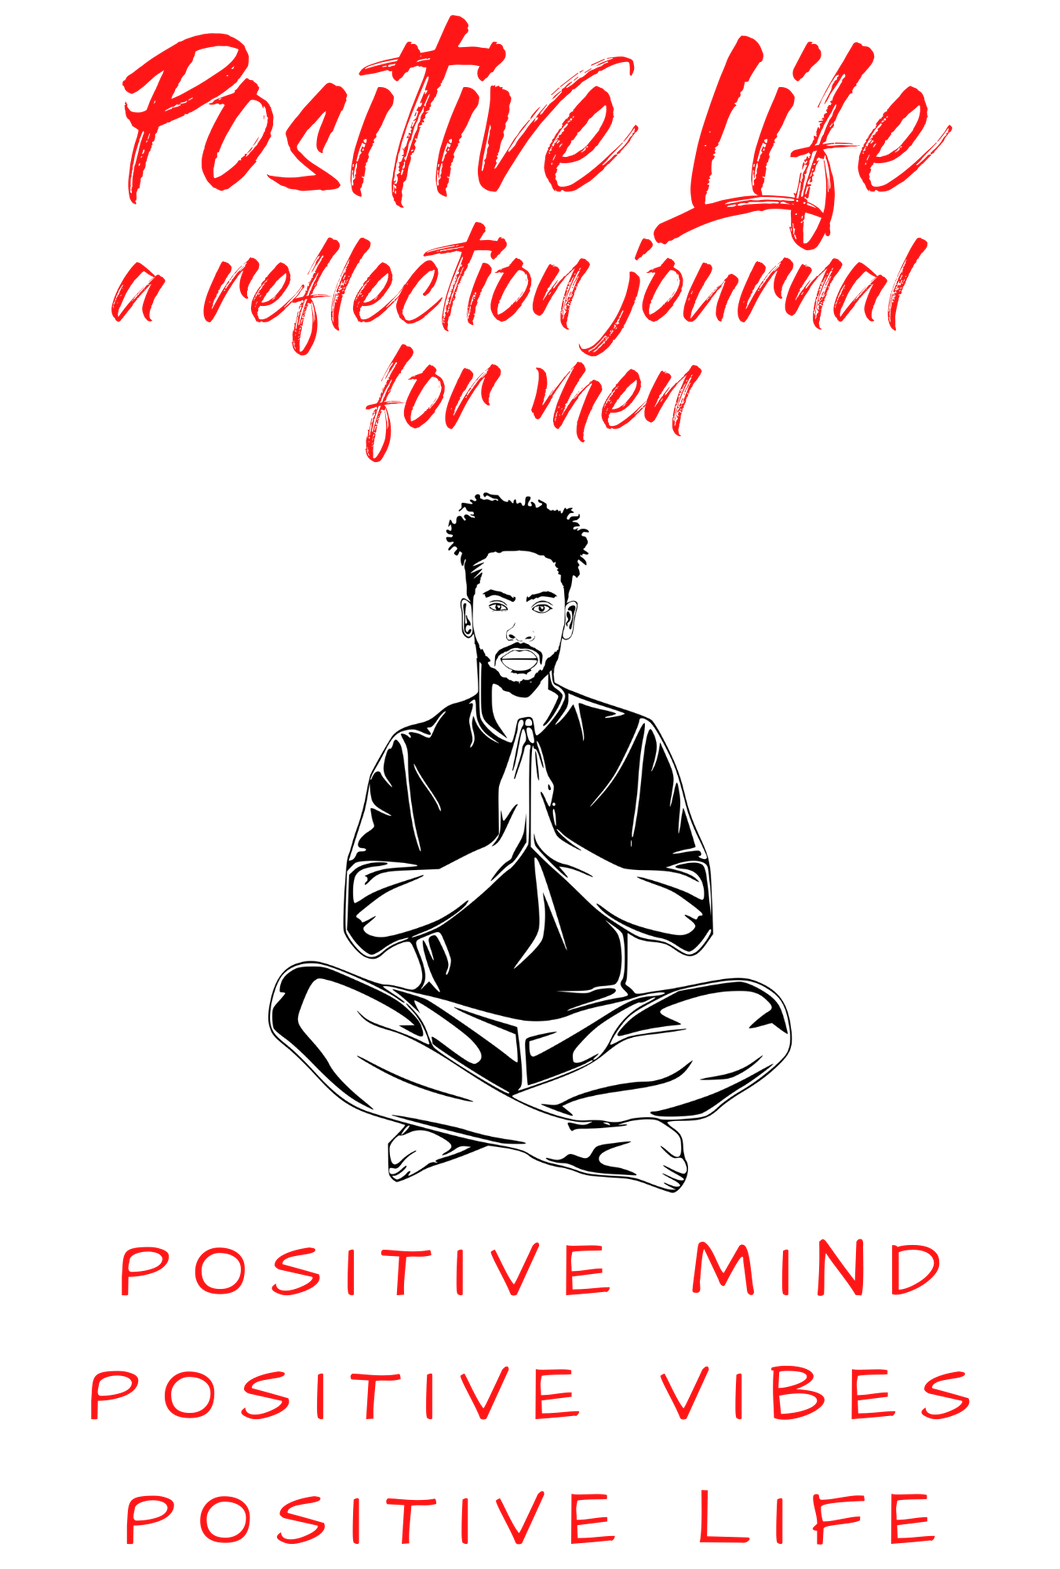 Positive Life  Journal - Signed Copy